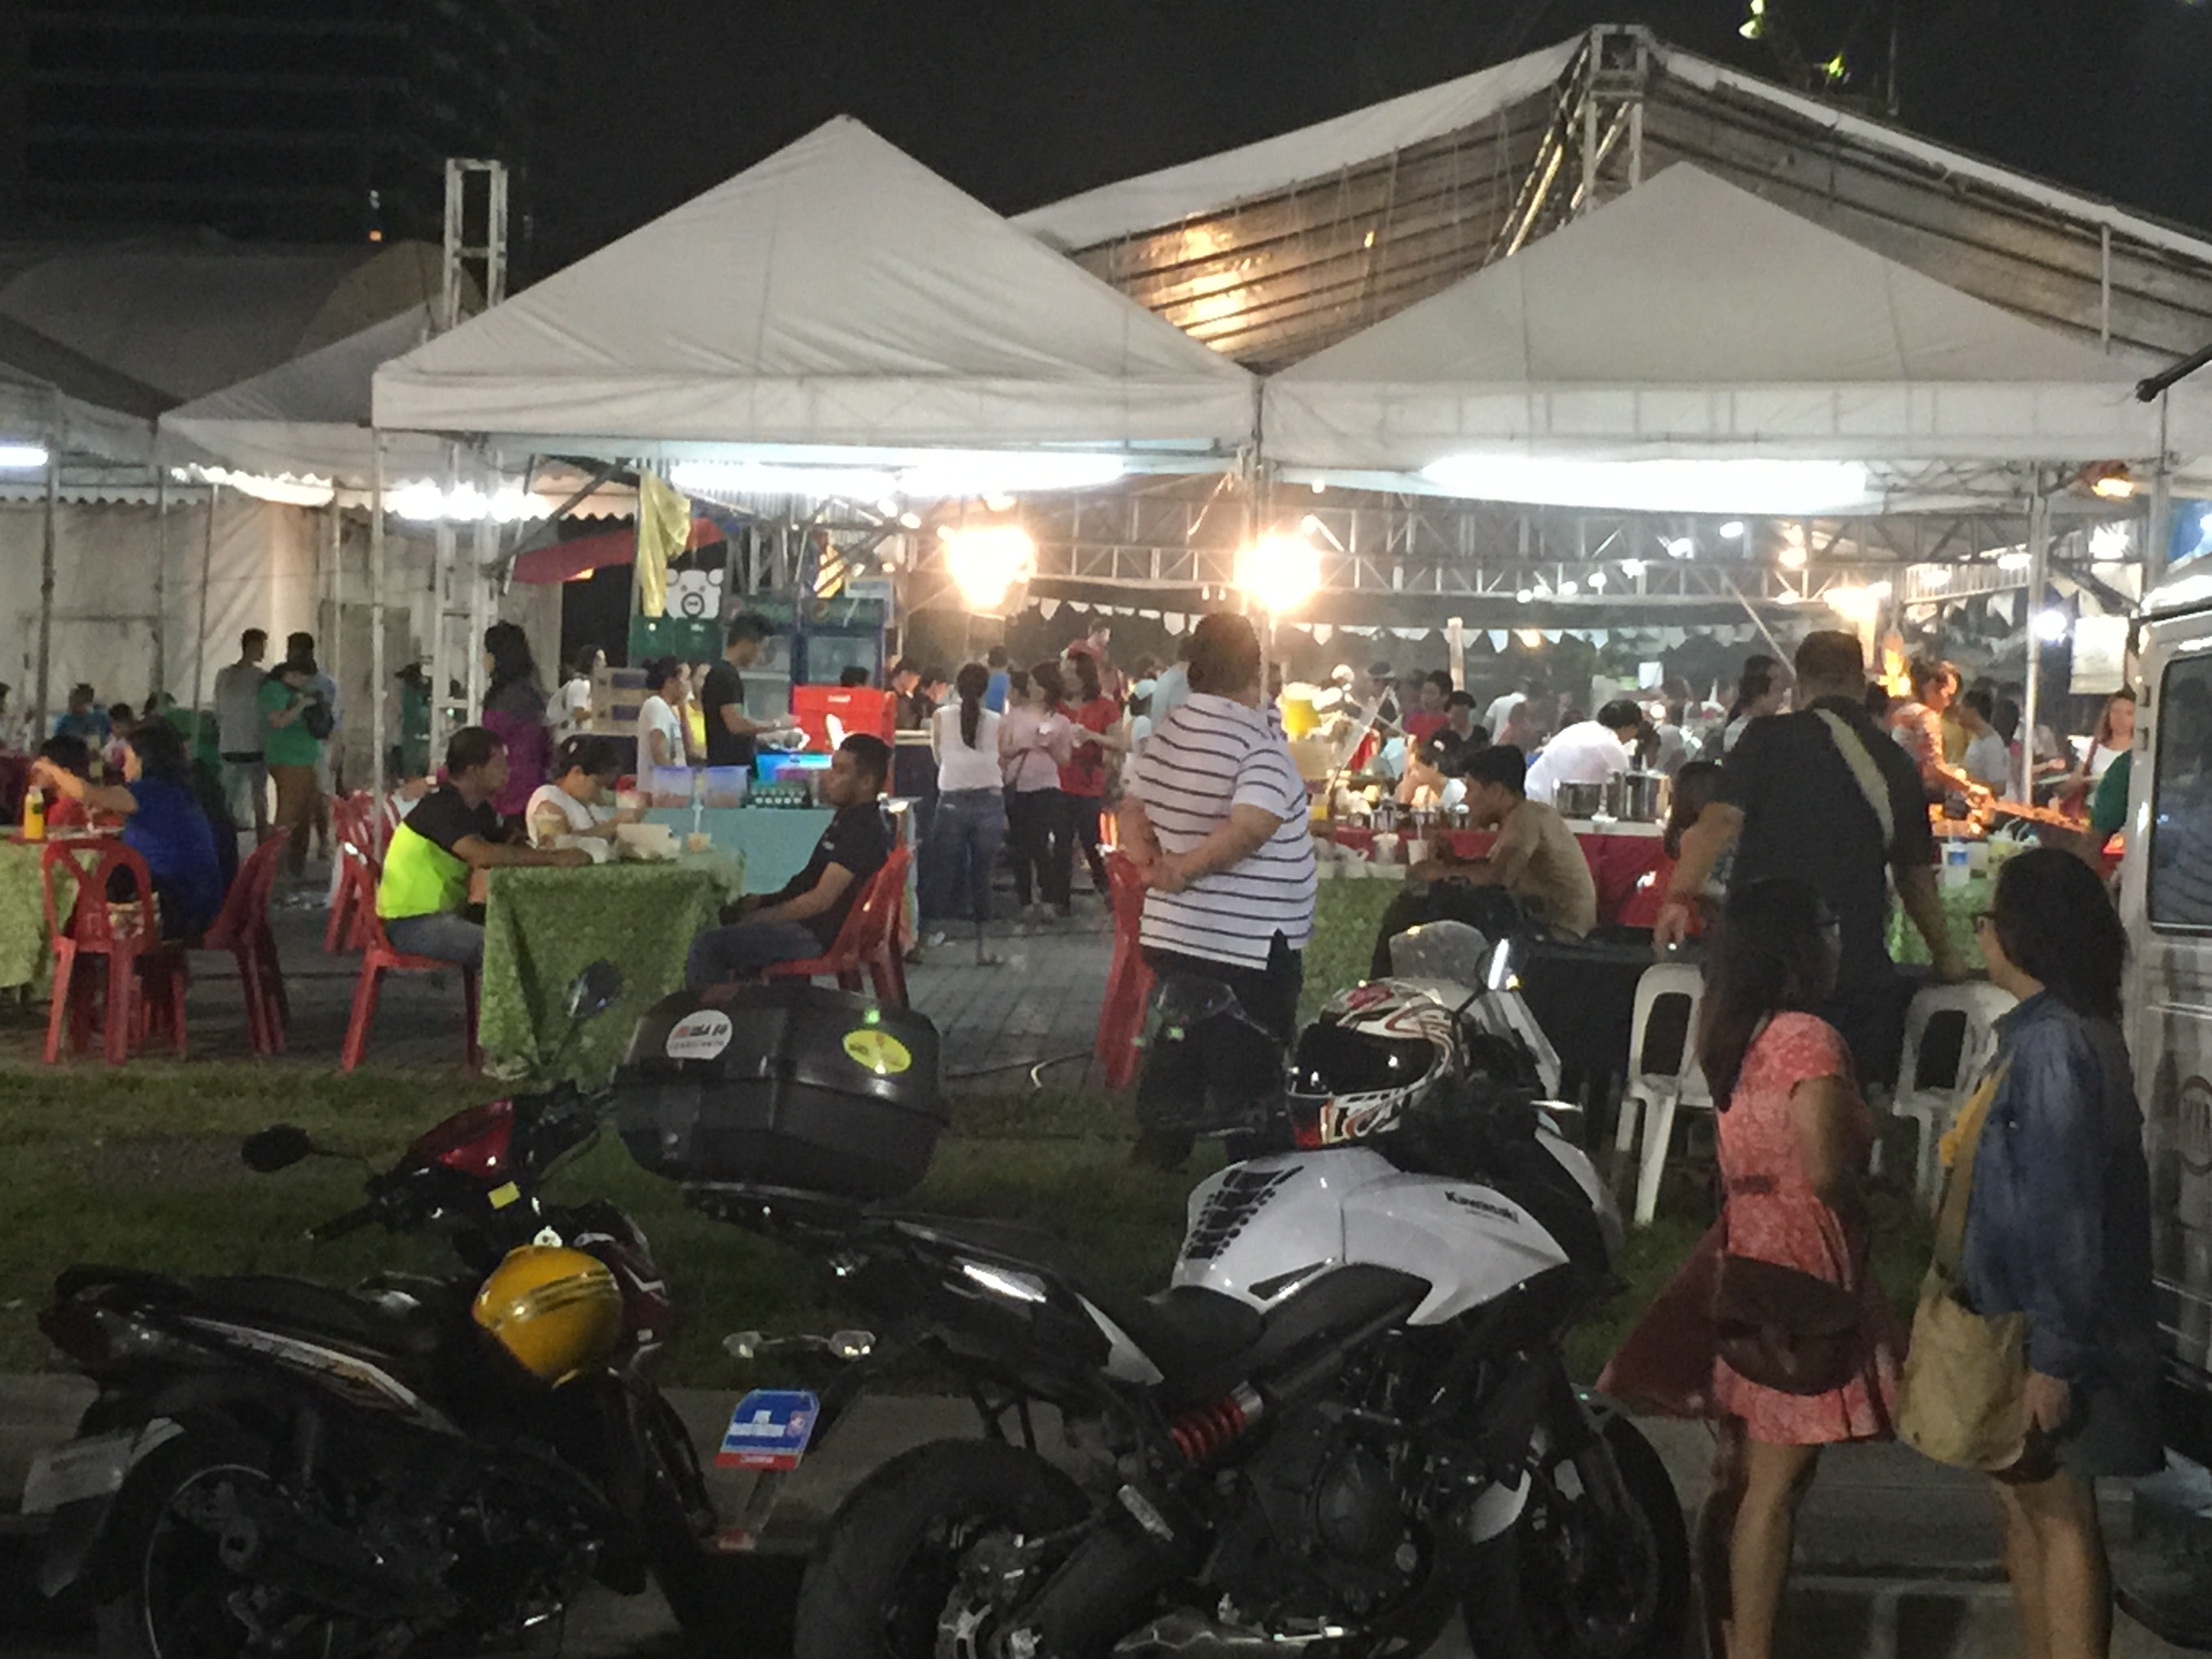 In the Philippines, night food markets do really well. It's just a lot more comfortable when the sun is down.